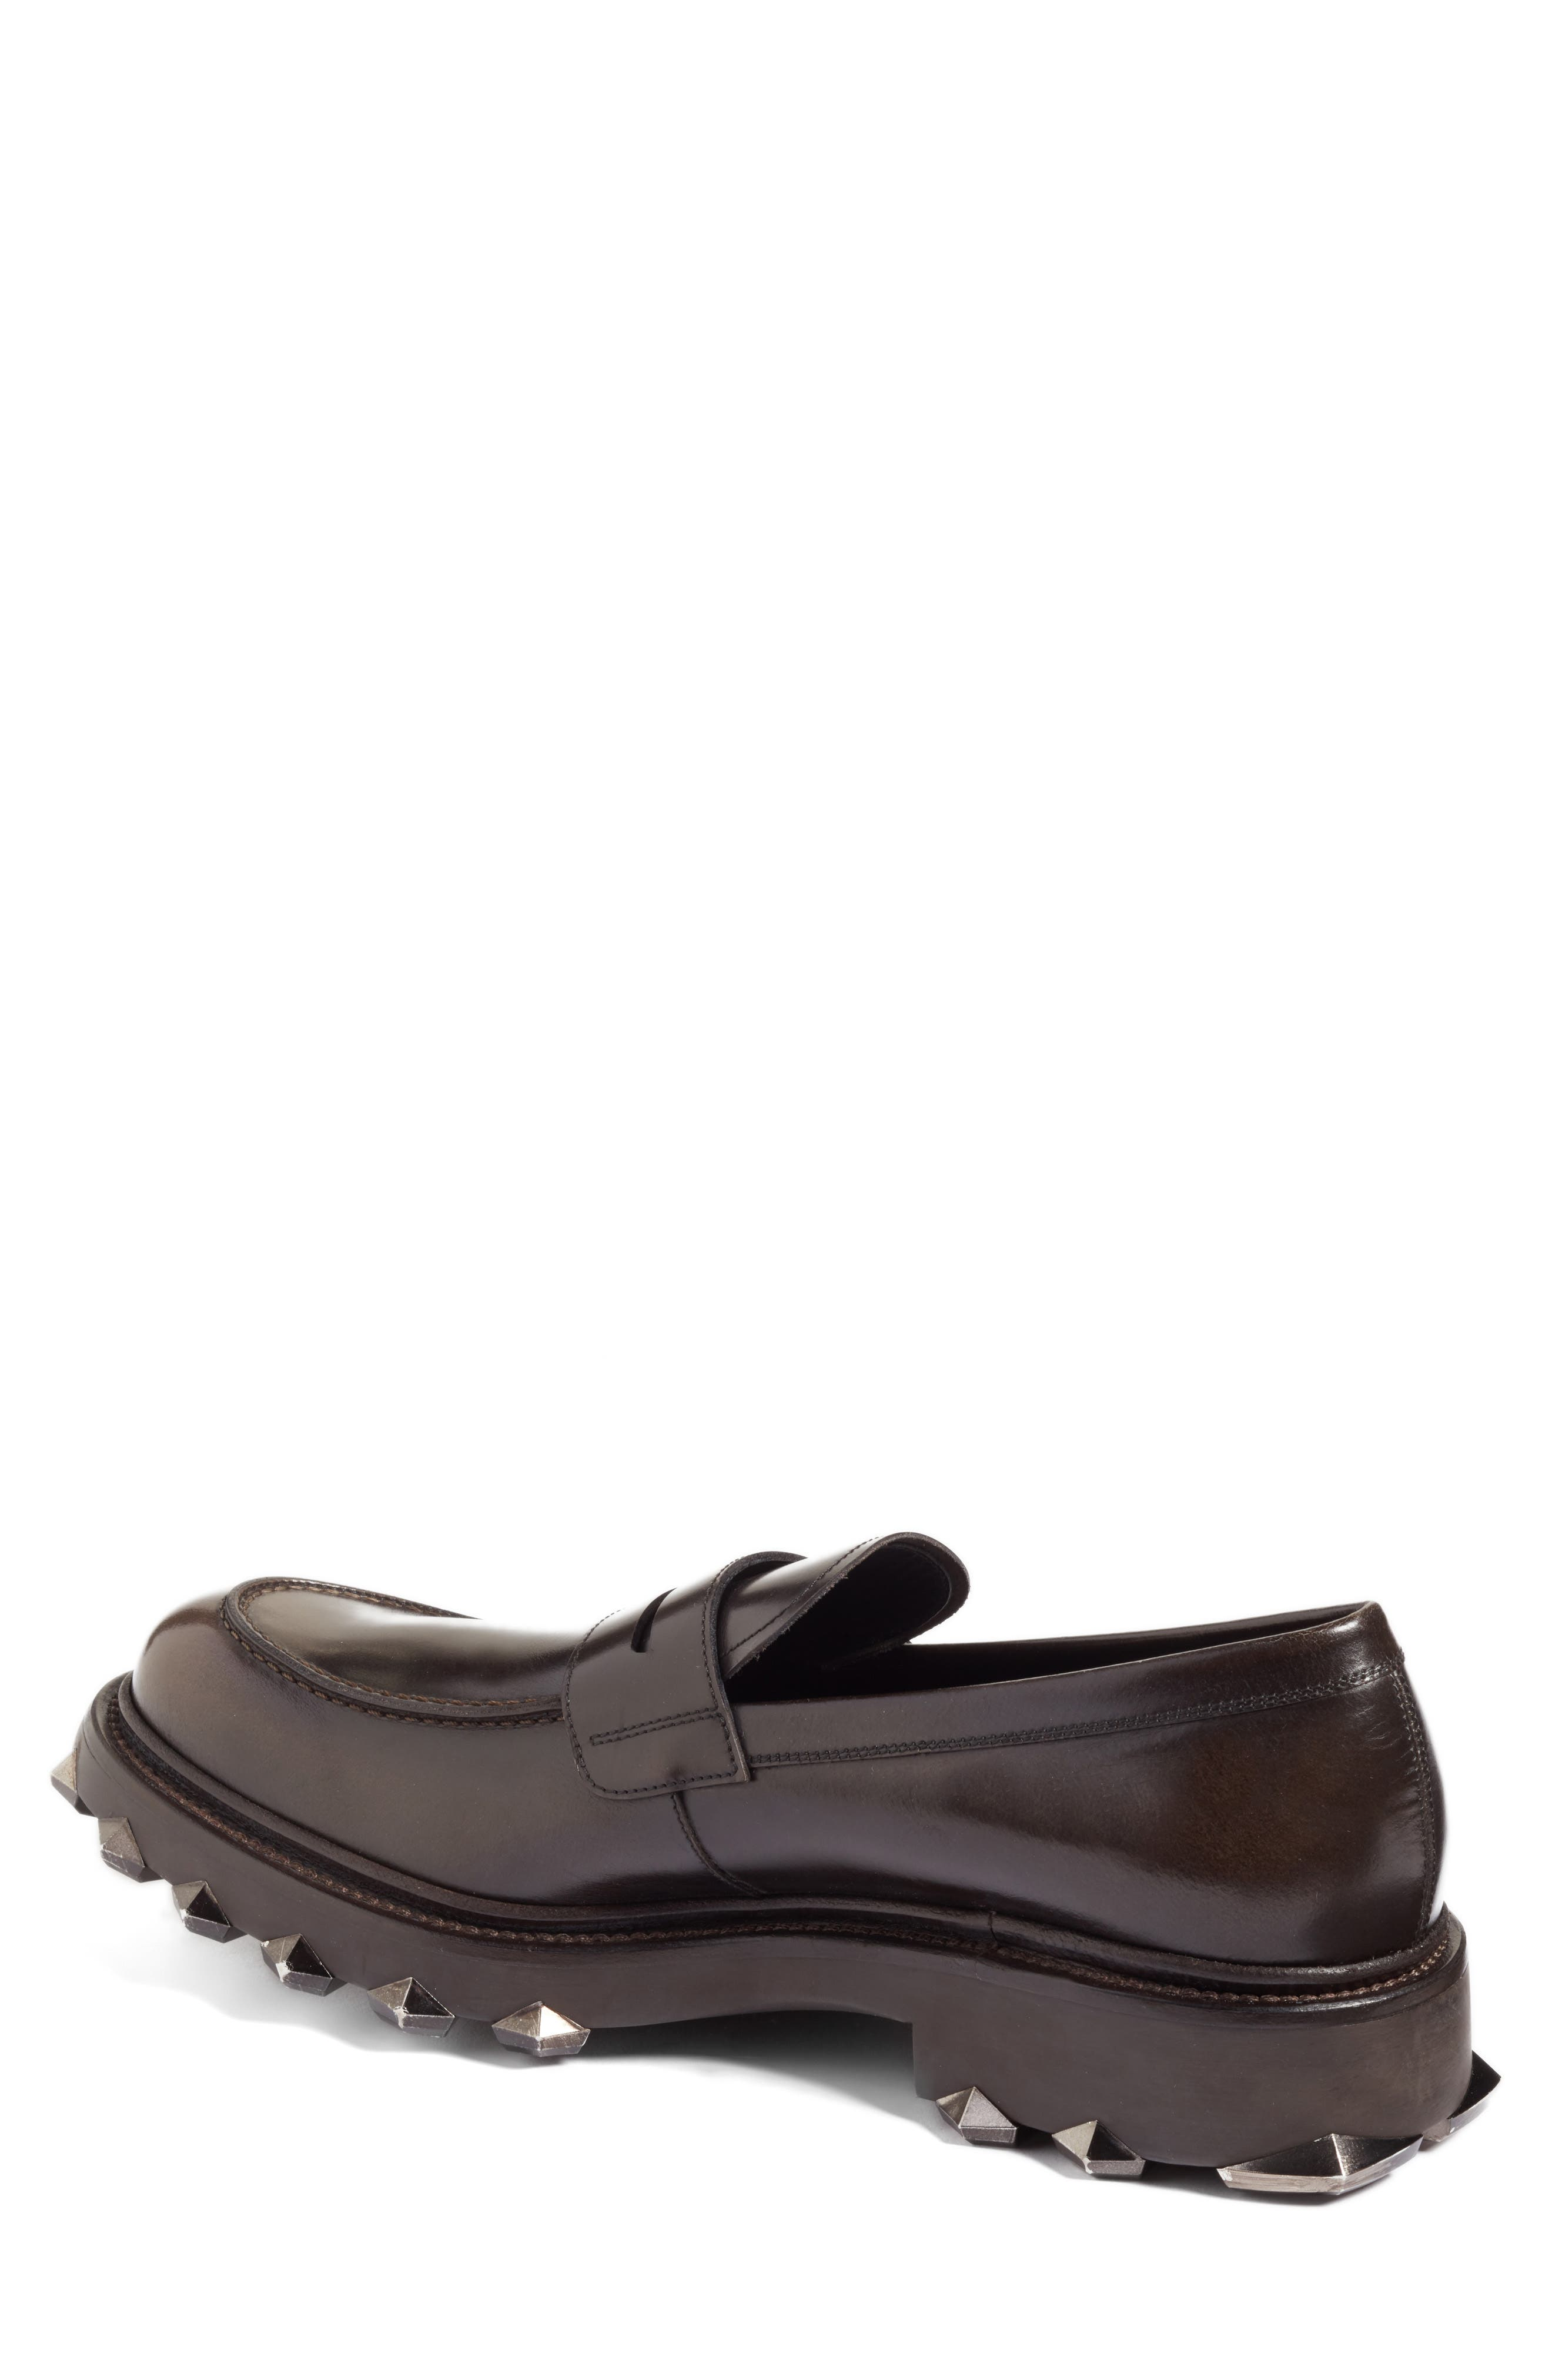 Penny Loafer,                             Alternate thumbnail 2, color,                             024